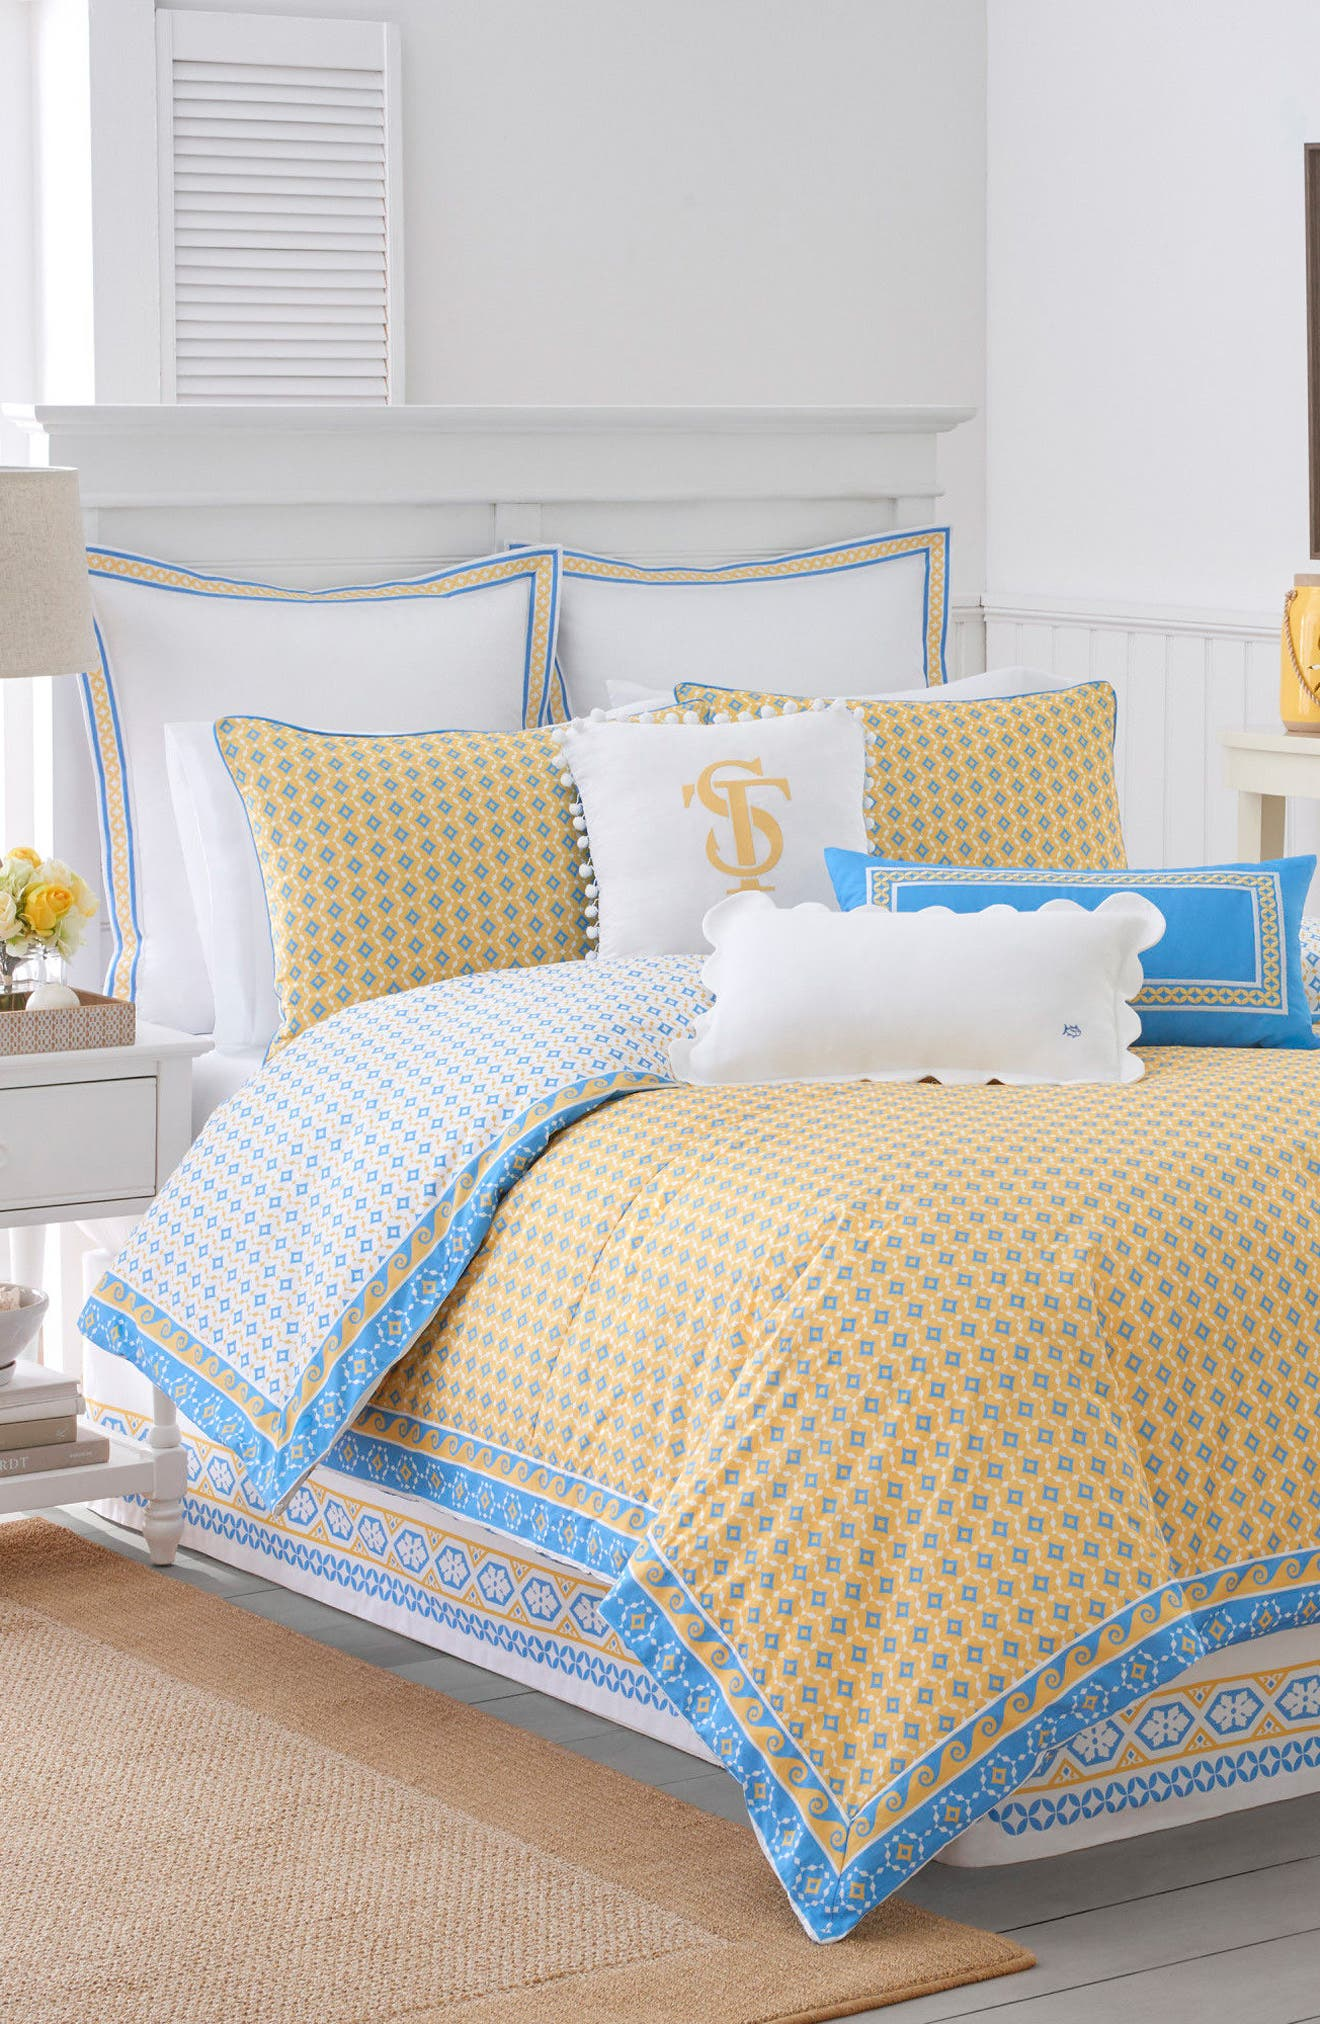 Southern Tide Sailgate Comforter, Sham & Bed Skirt Set